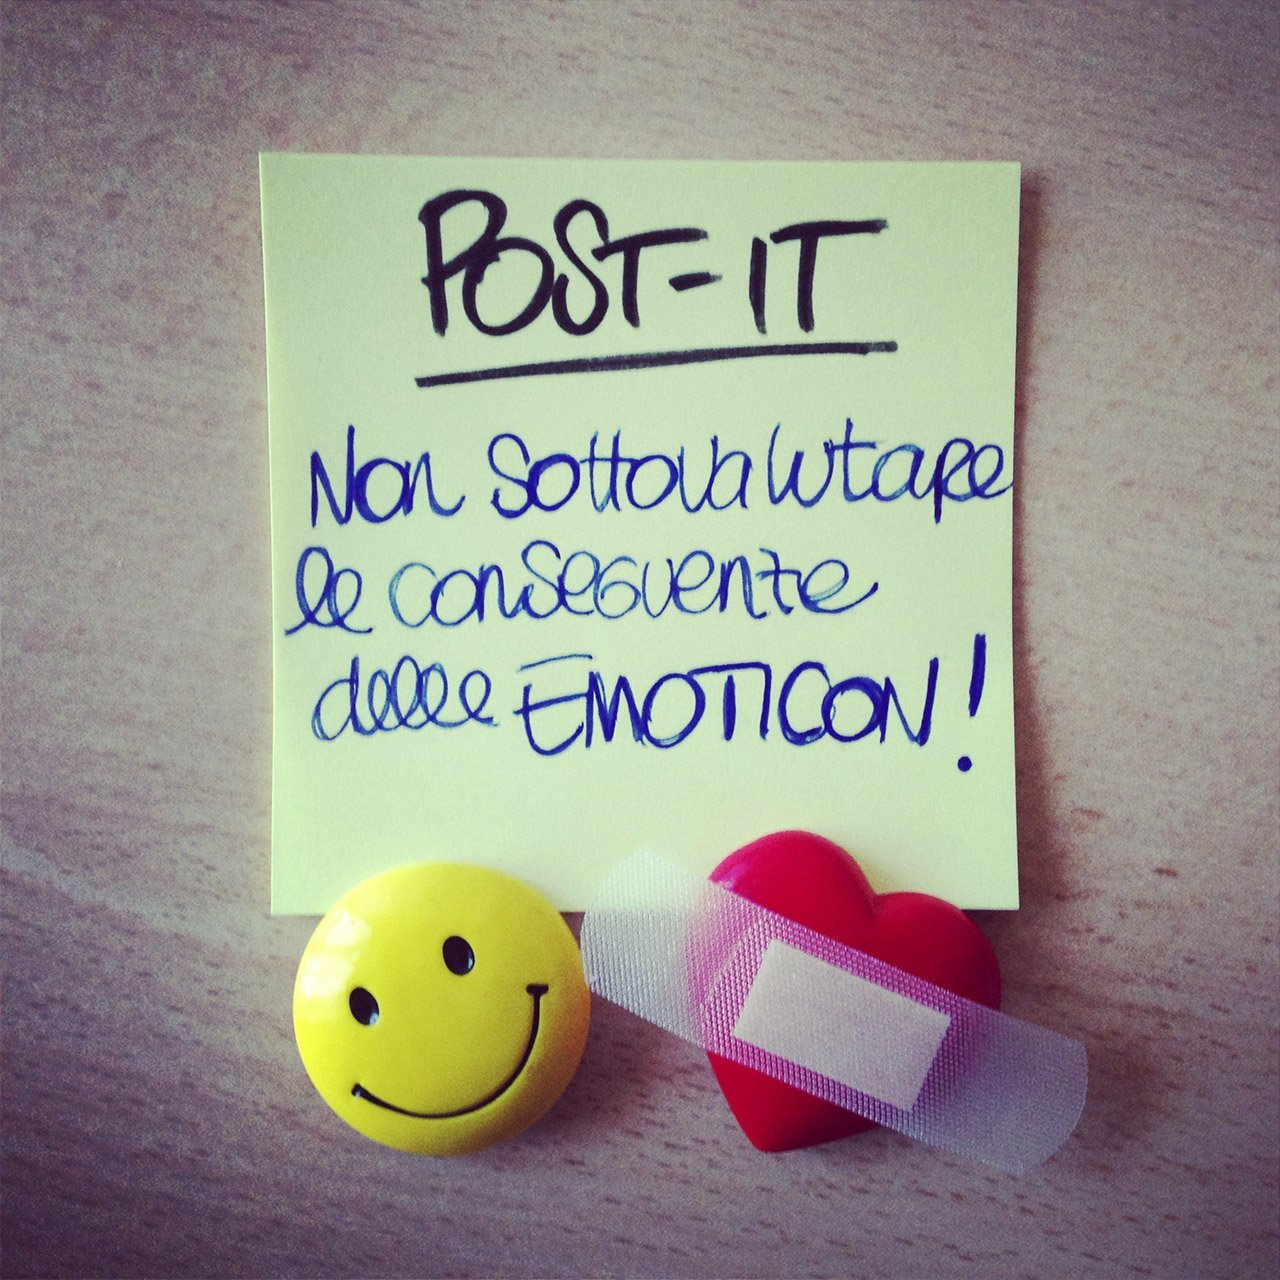 POST-IT: Non sottovalutare le conseguenze delle EMOTICON